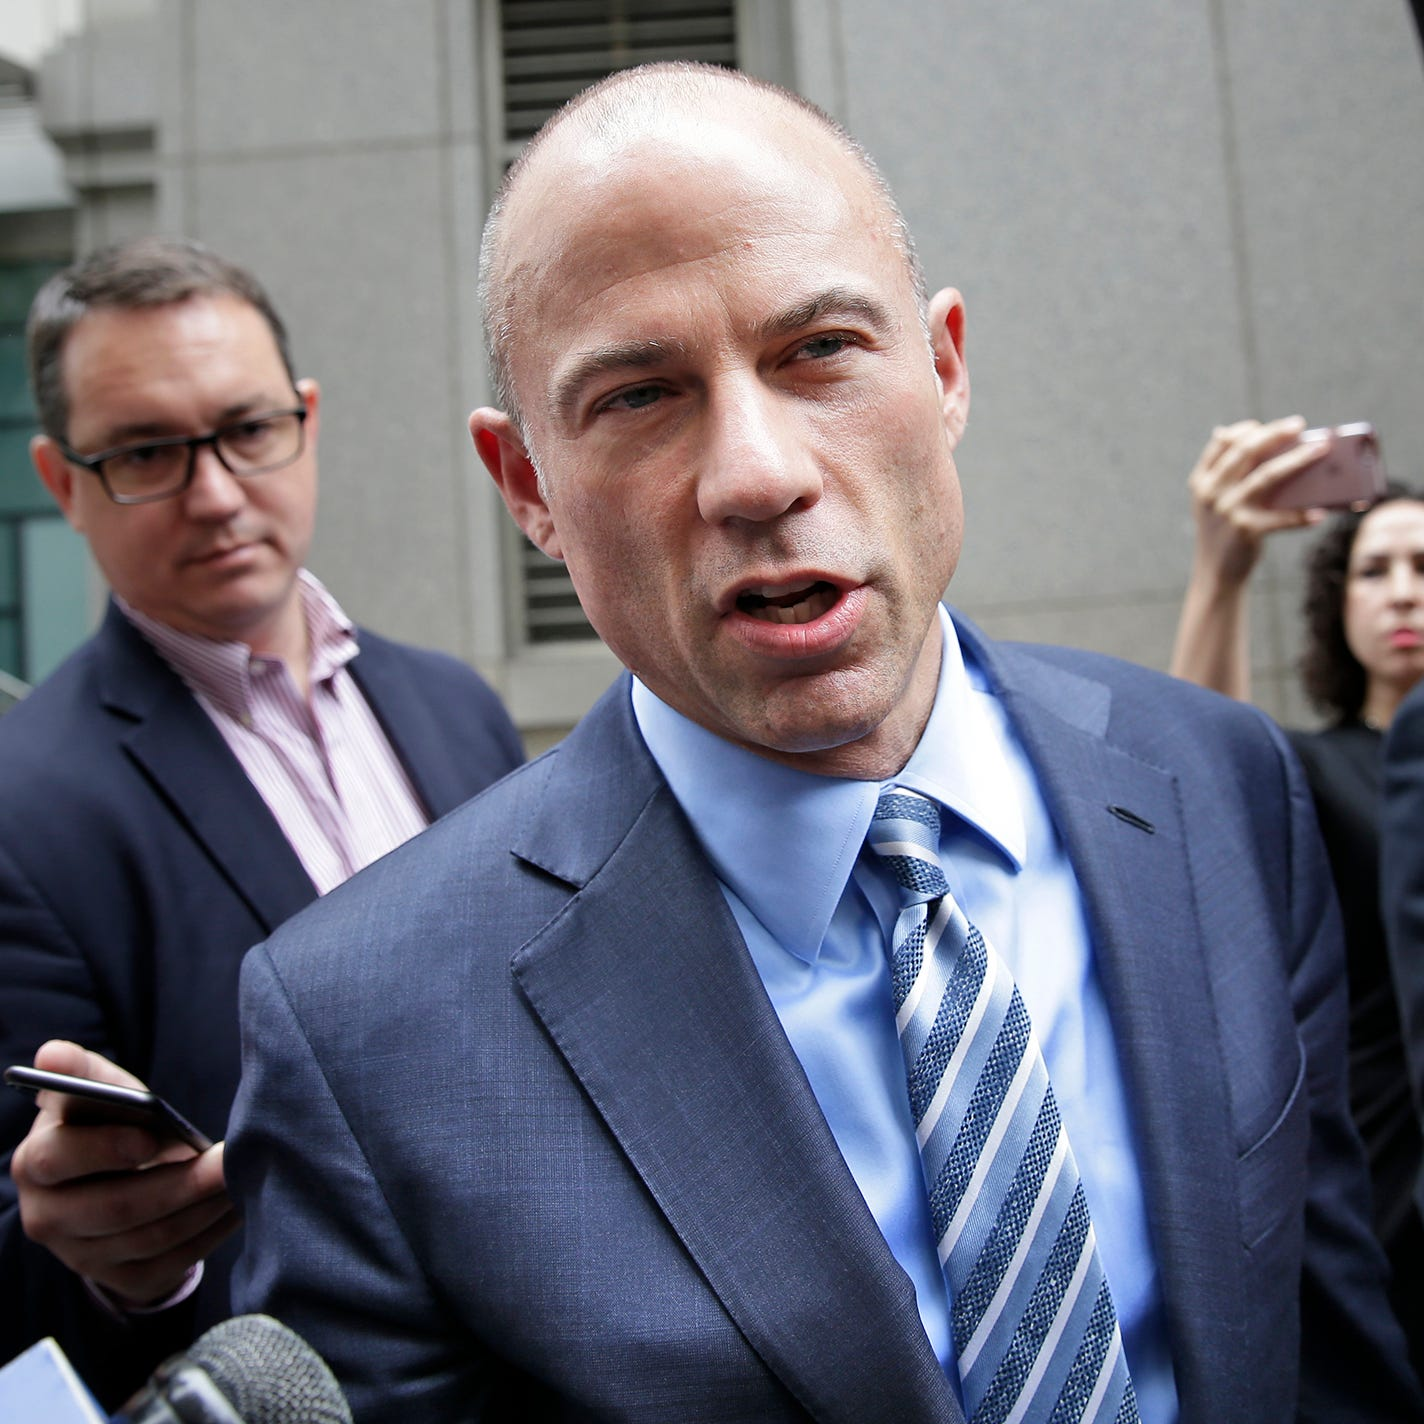 Michael Avenatti, known for Stormy Daniels lawsuit, to visit Vermont in mid-November